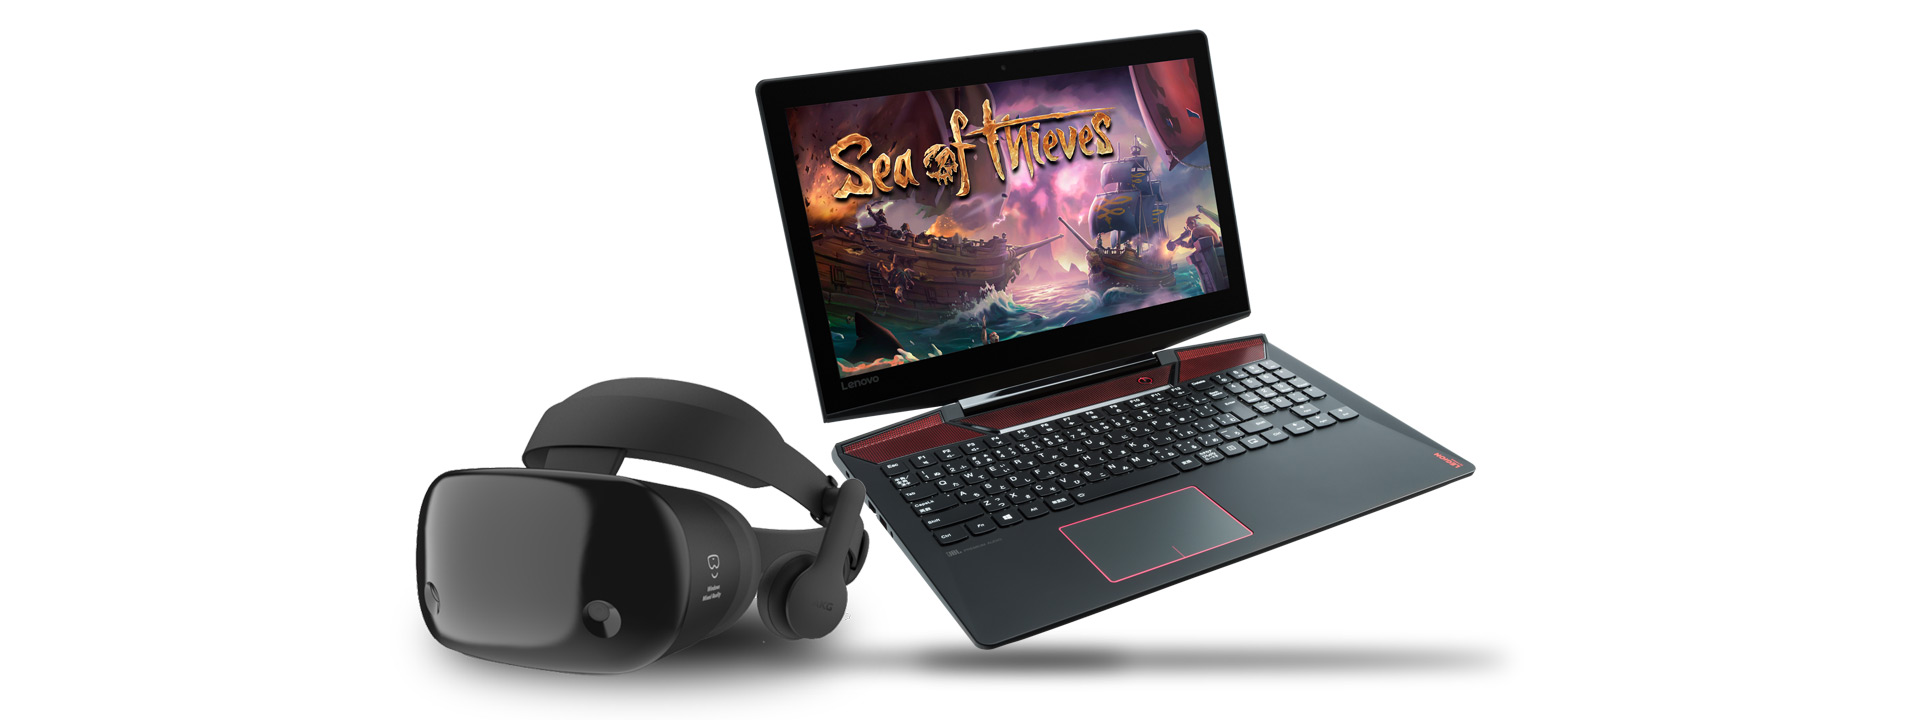 Windows Mixed Reality headset with a gaming laptop showing Sea of Thieves on the screen